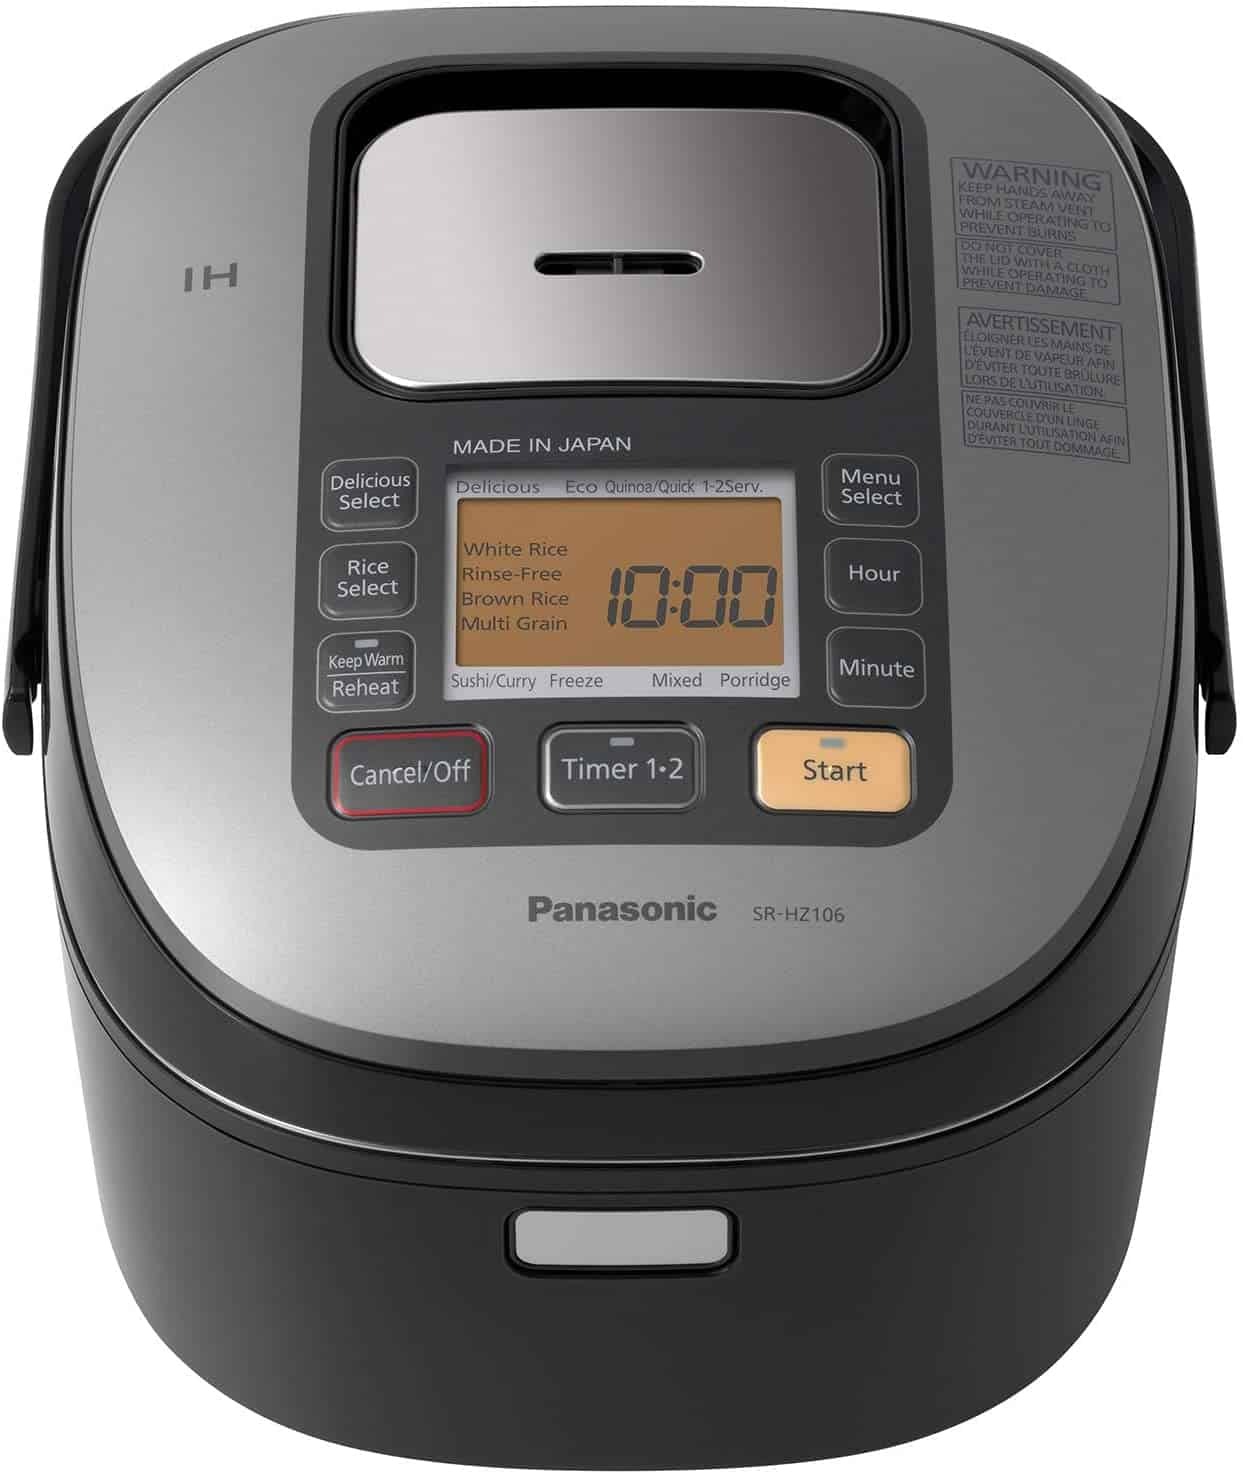 Panasonic SR-HZ106 Induction Heating Electronic Rice Cooker